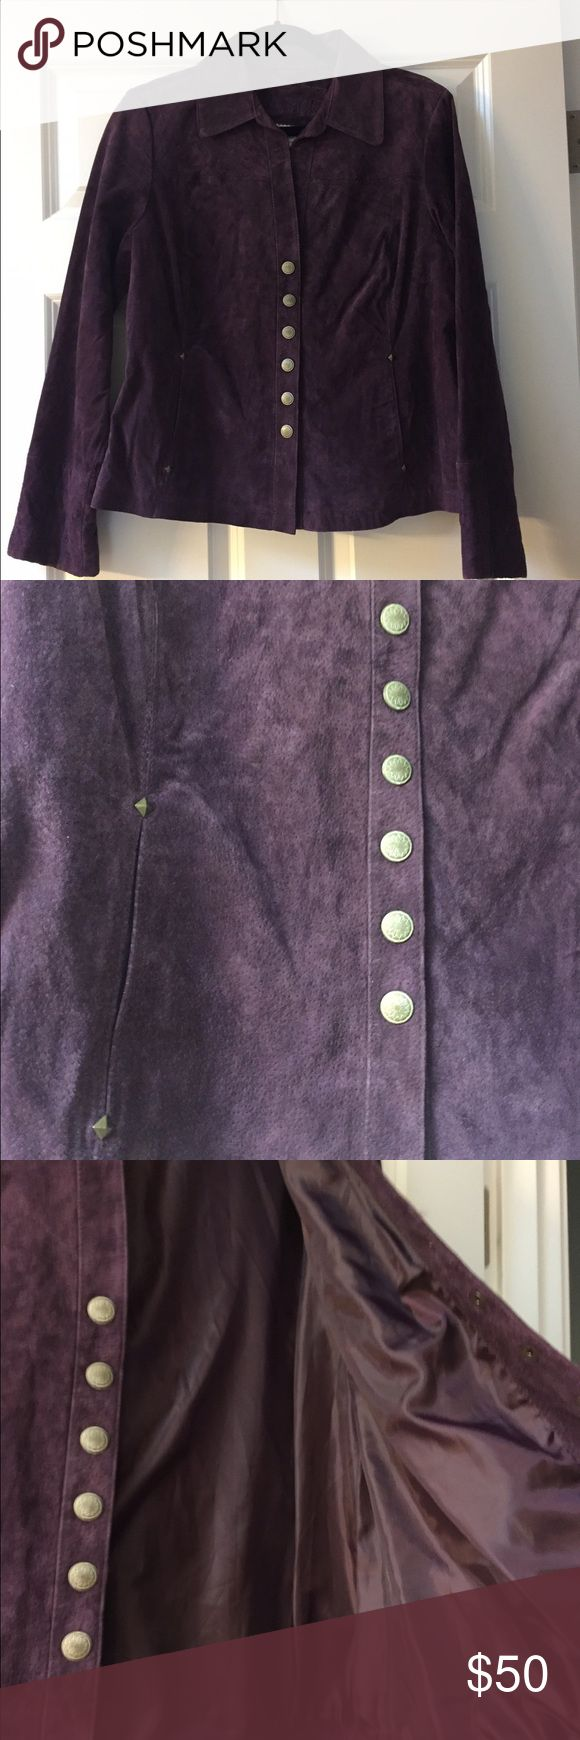 Ami Purple Leather Jacket Beautiful purple leather jacket with fun detailing! This has pop button closures. Ami Jackets & Coats